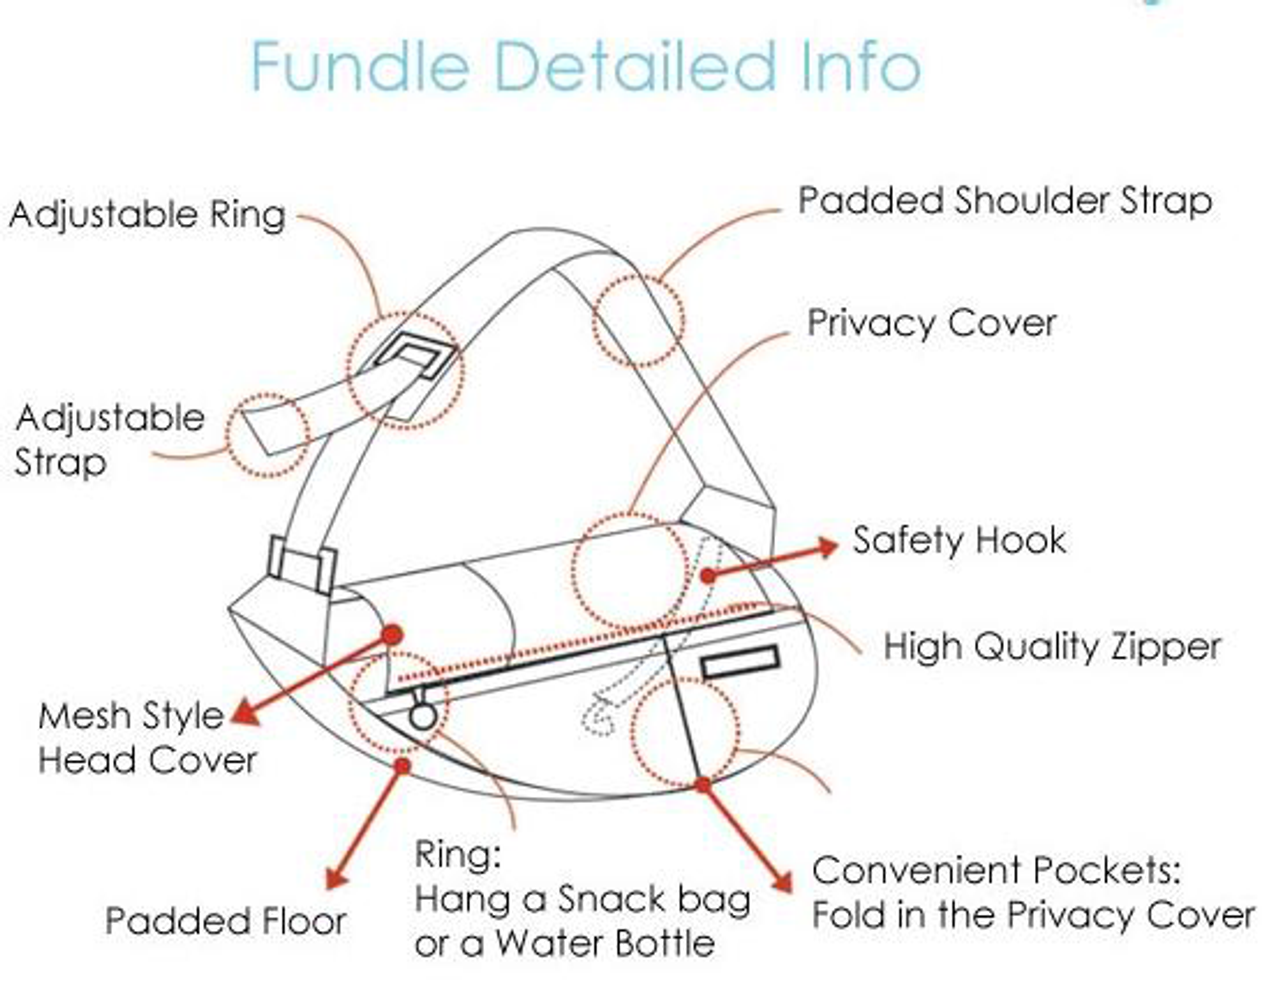 Fundle Pet Sling Features